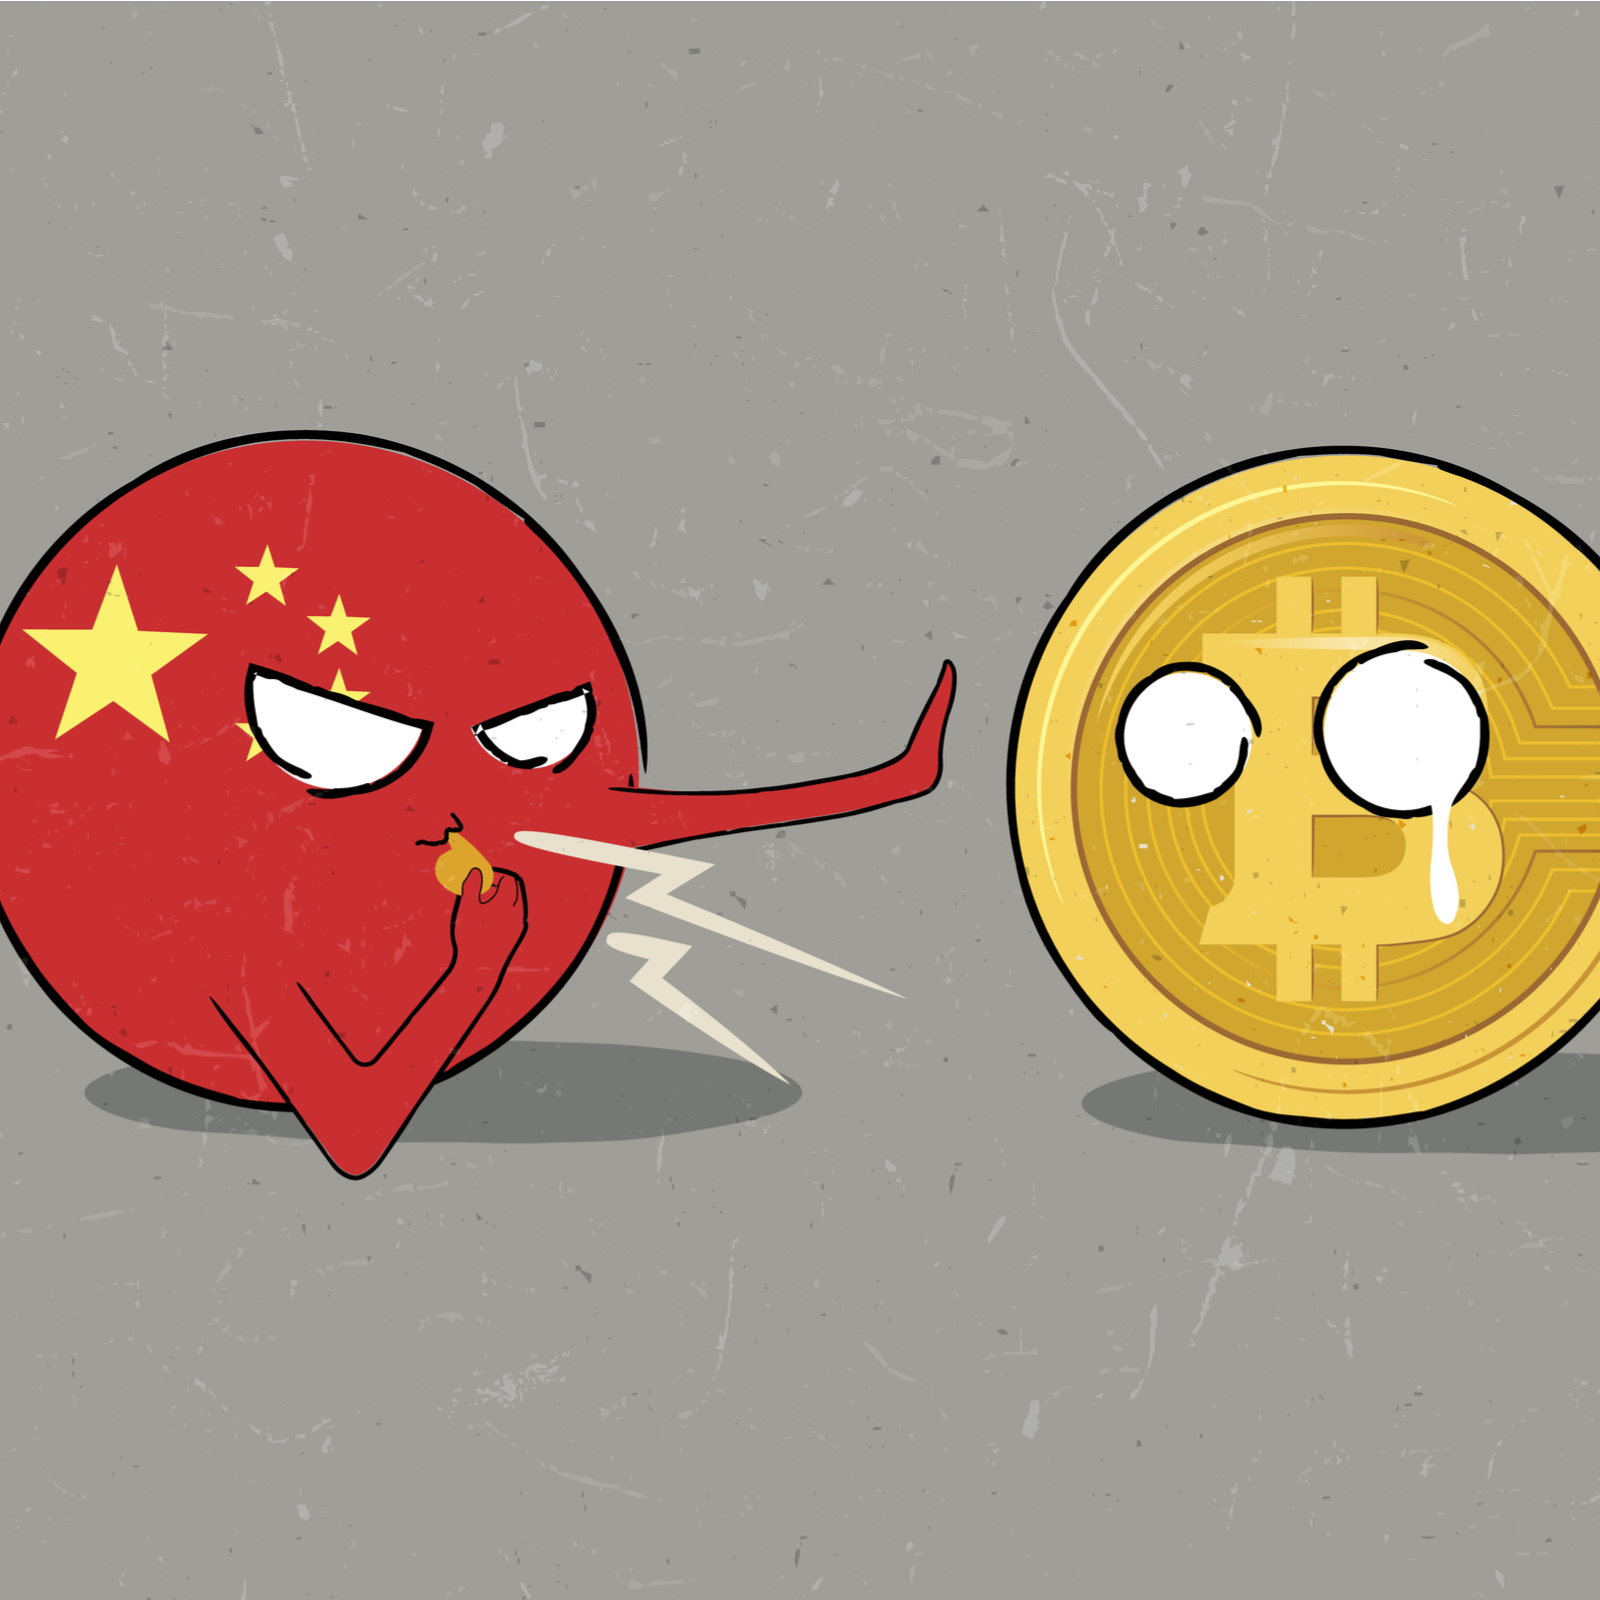 Study Argues Chinese Mining Centralization Threatens Bitcoin Network